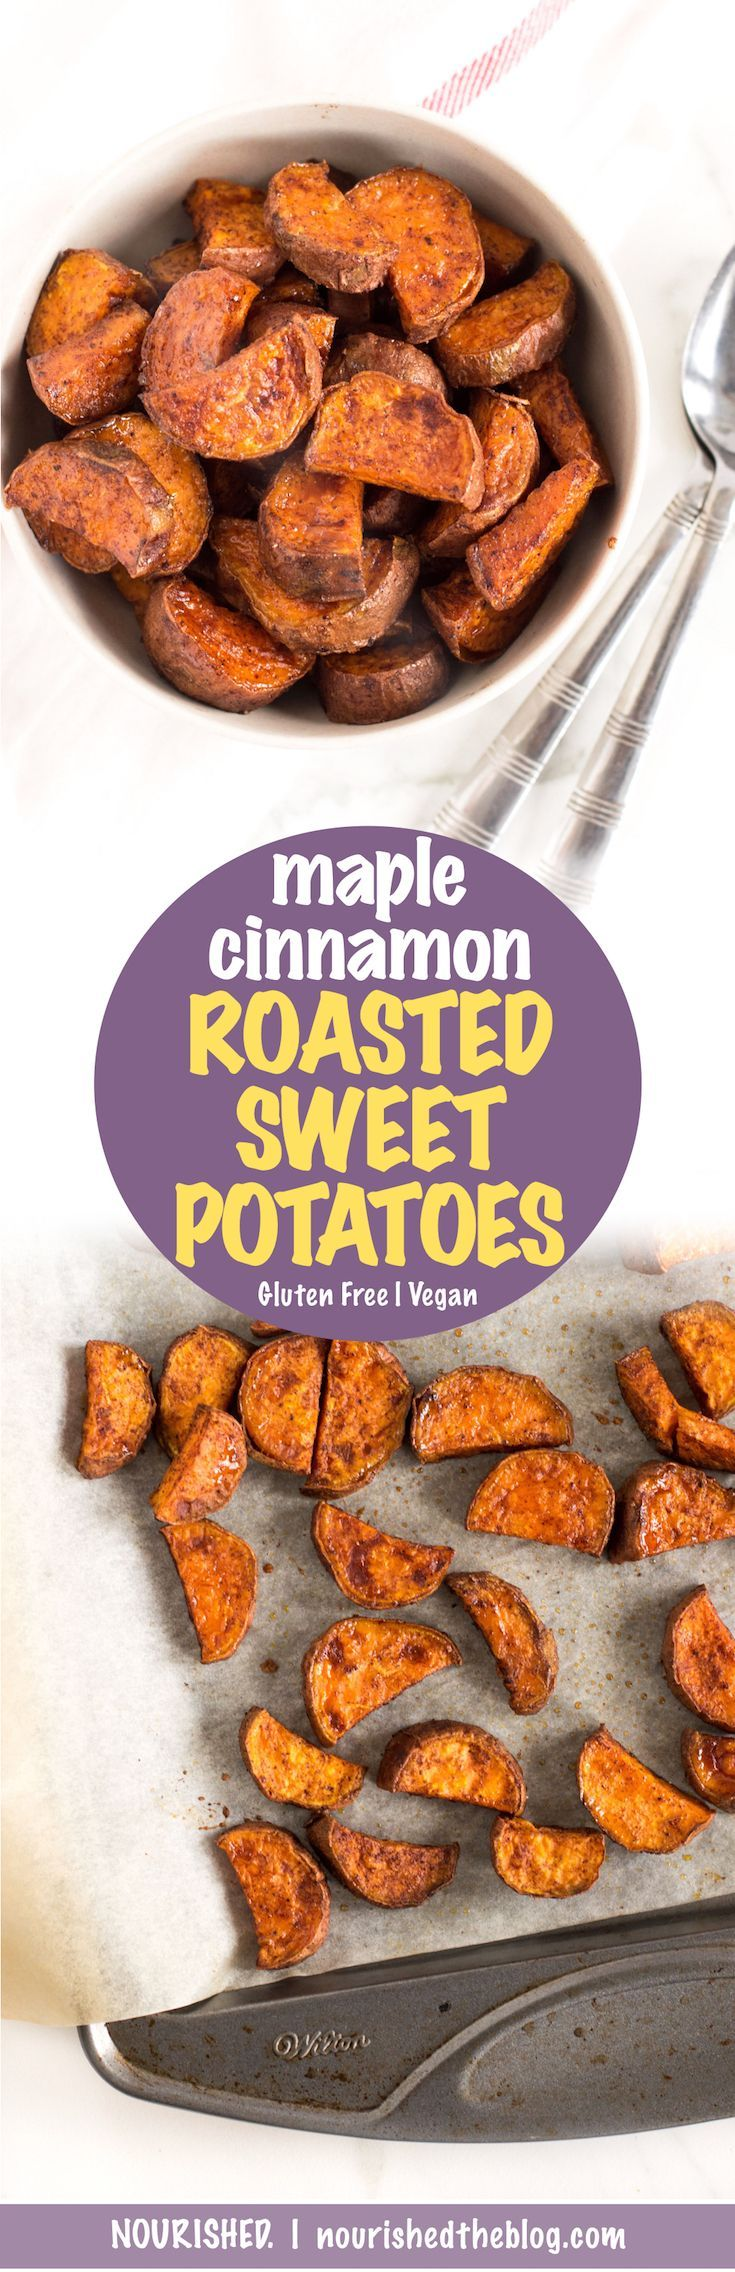 Maple Cinnamon Roasted Sweet Potatoes | sweet and savoury side dish | quick and easy recipe | gluten free and vegan | roasted sweet potato | These potatoes will definitely be a hit beside any dinner.